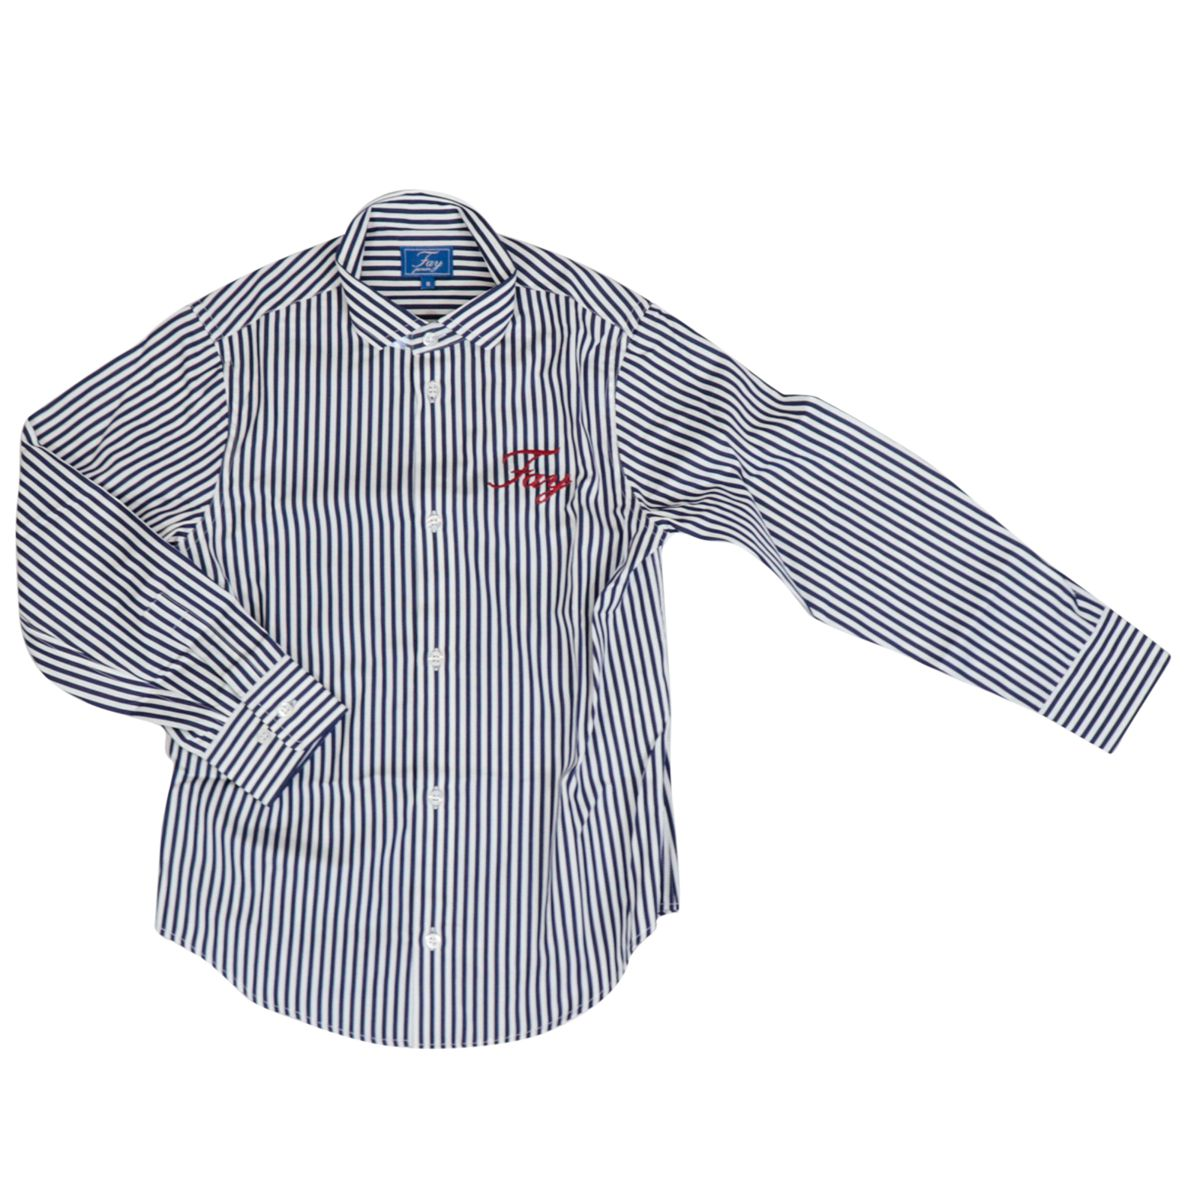 Striped cotton shirt with large embroidered logo White / blue Fay